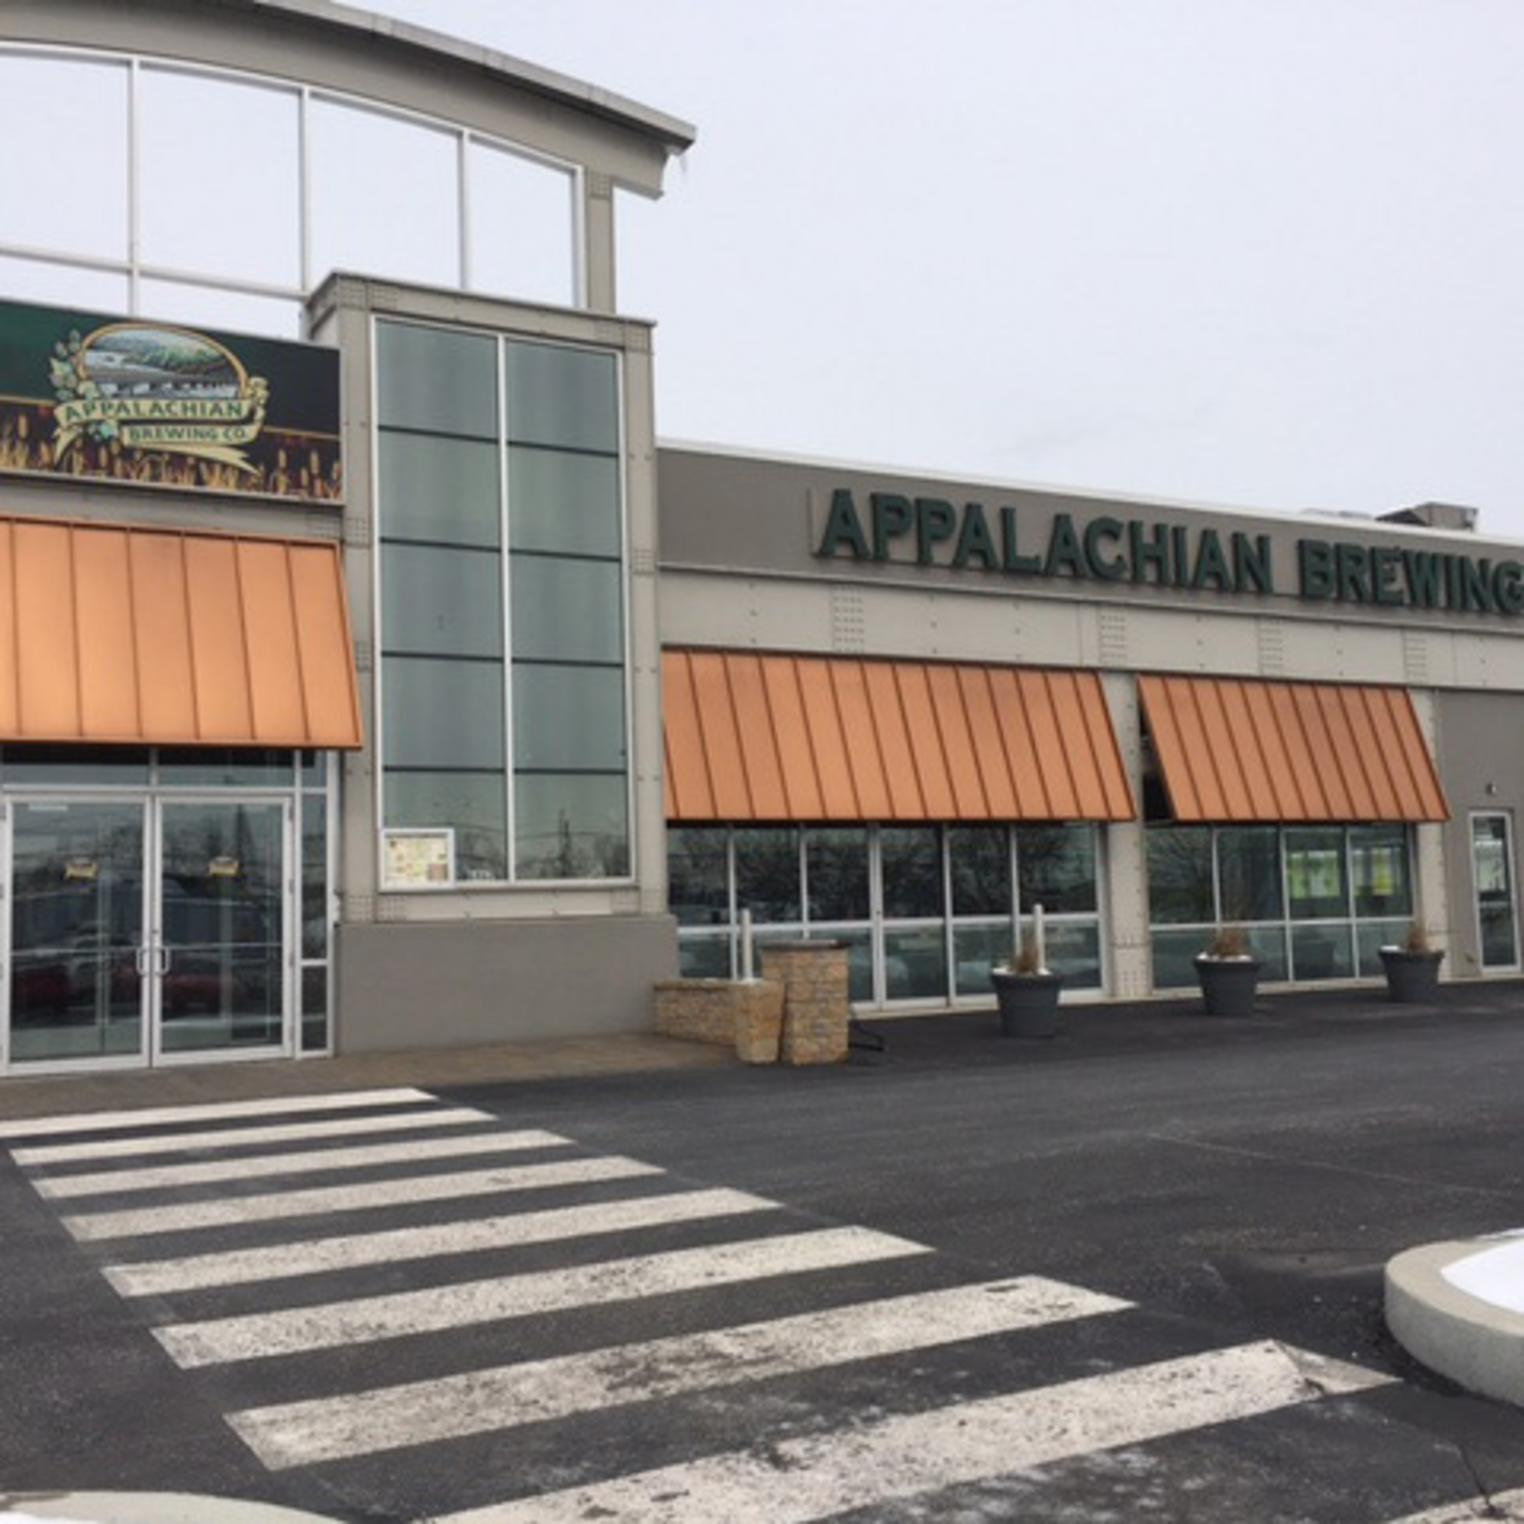 Entrance to Appalachian Brewing Company Mechanicsburg